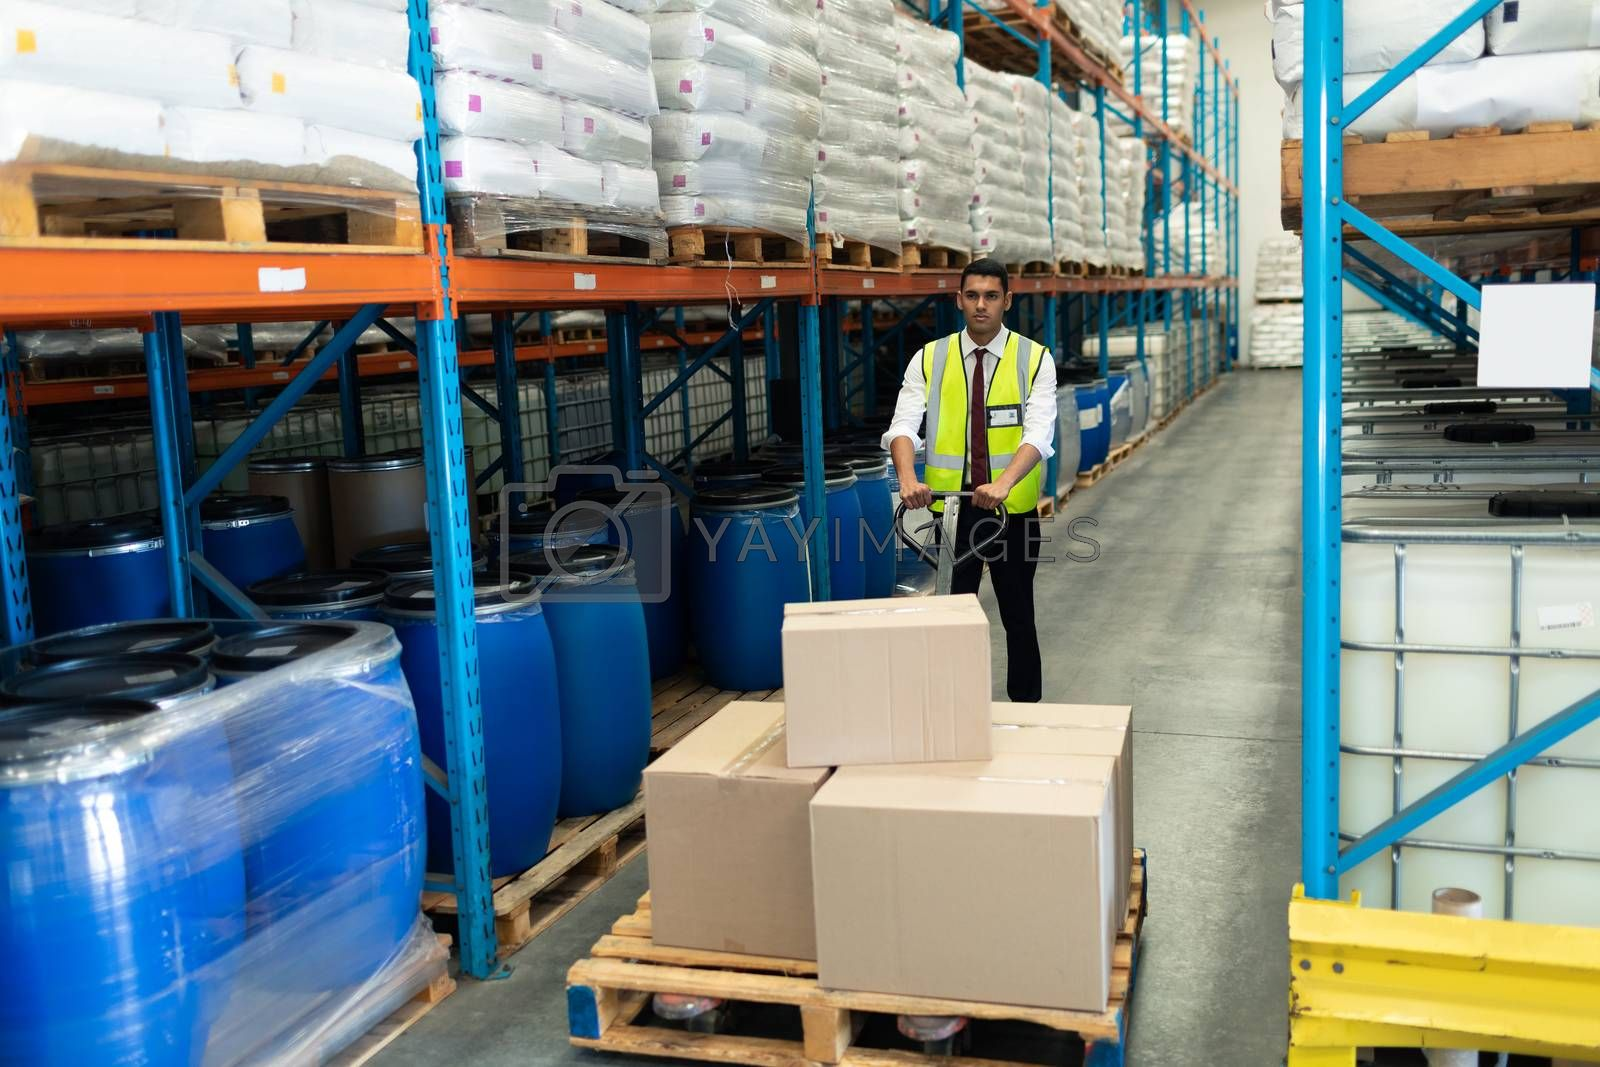 Front view of Caucasian male staff using pallet jack in warehouse. This is a freight transportation and distribution warehouse. Industrial and industrial workers concept